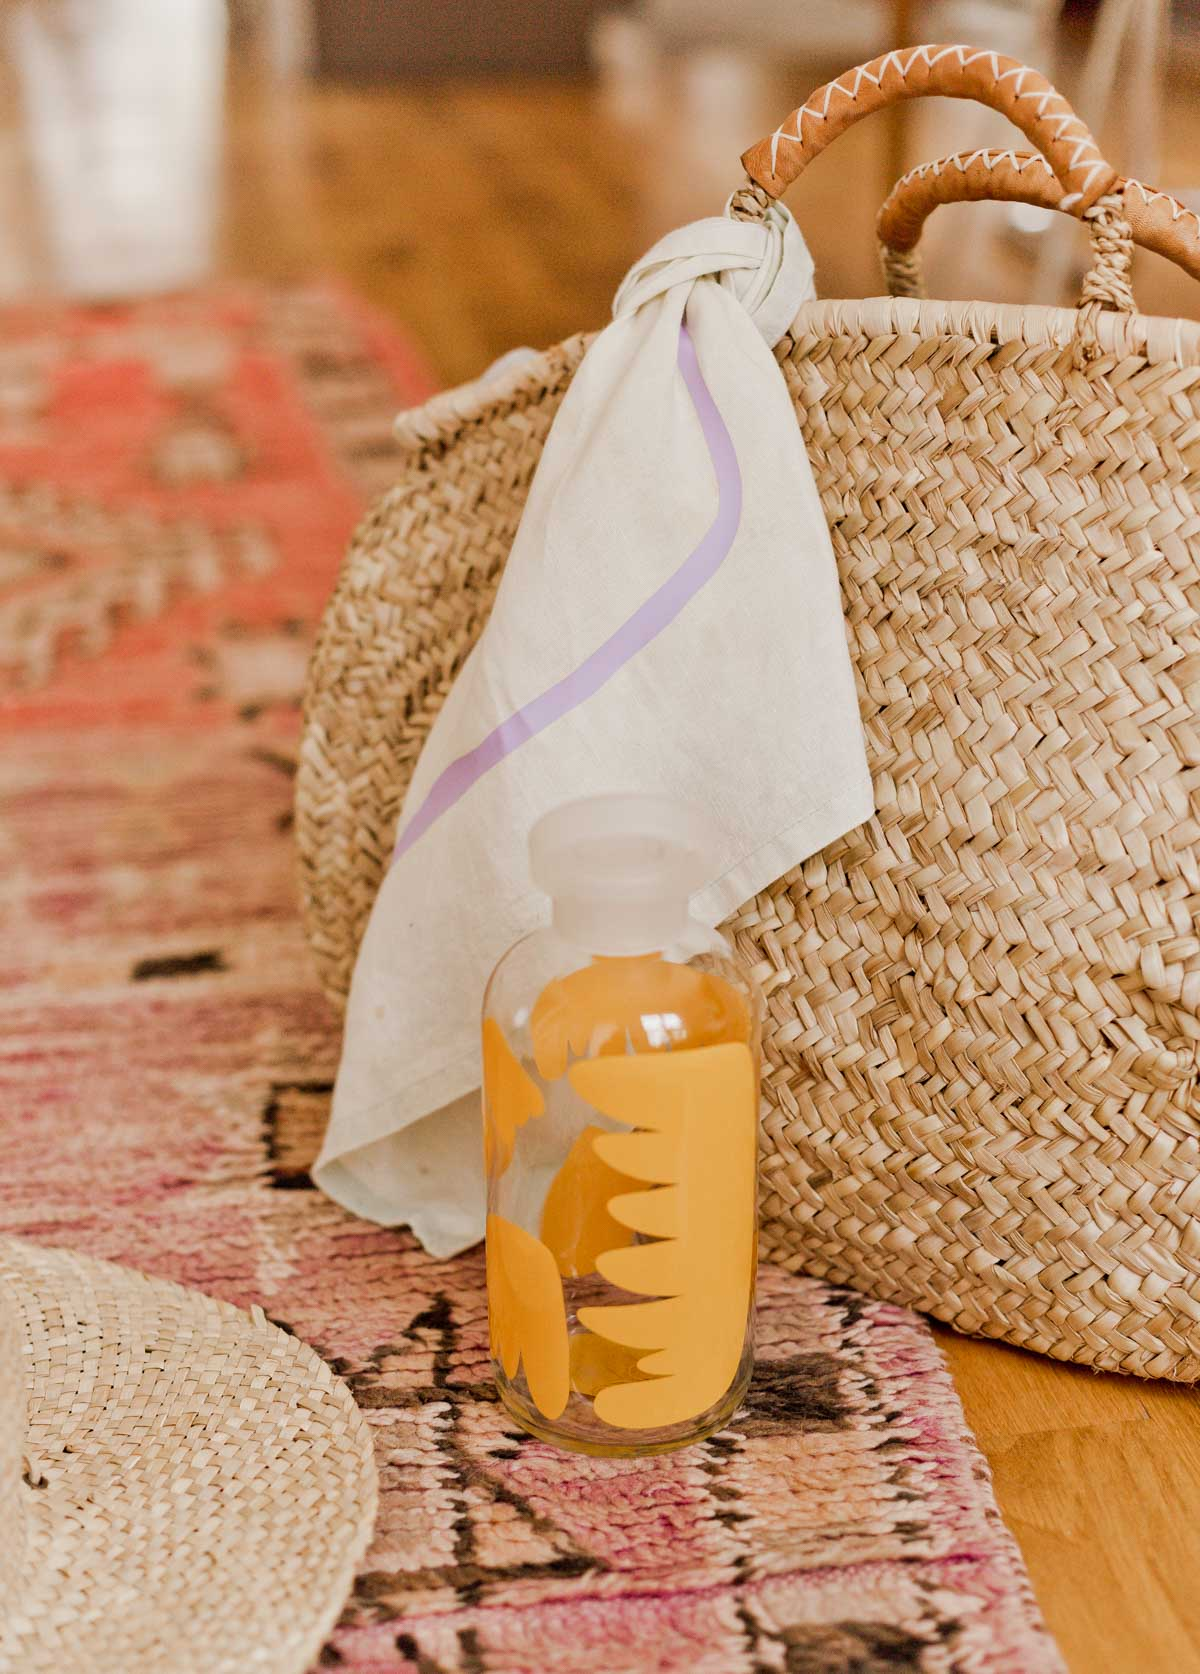 DIY Summer Accessories Idea // Give plain bandanas and an old water bottle new life with a quick (and easy) makeover. Click through for the tutorial AND free downloadable patterns to add unique prints to nearly anything you can think of. #diy #diysummer #summer #summeraccessories